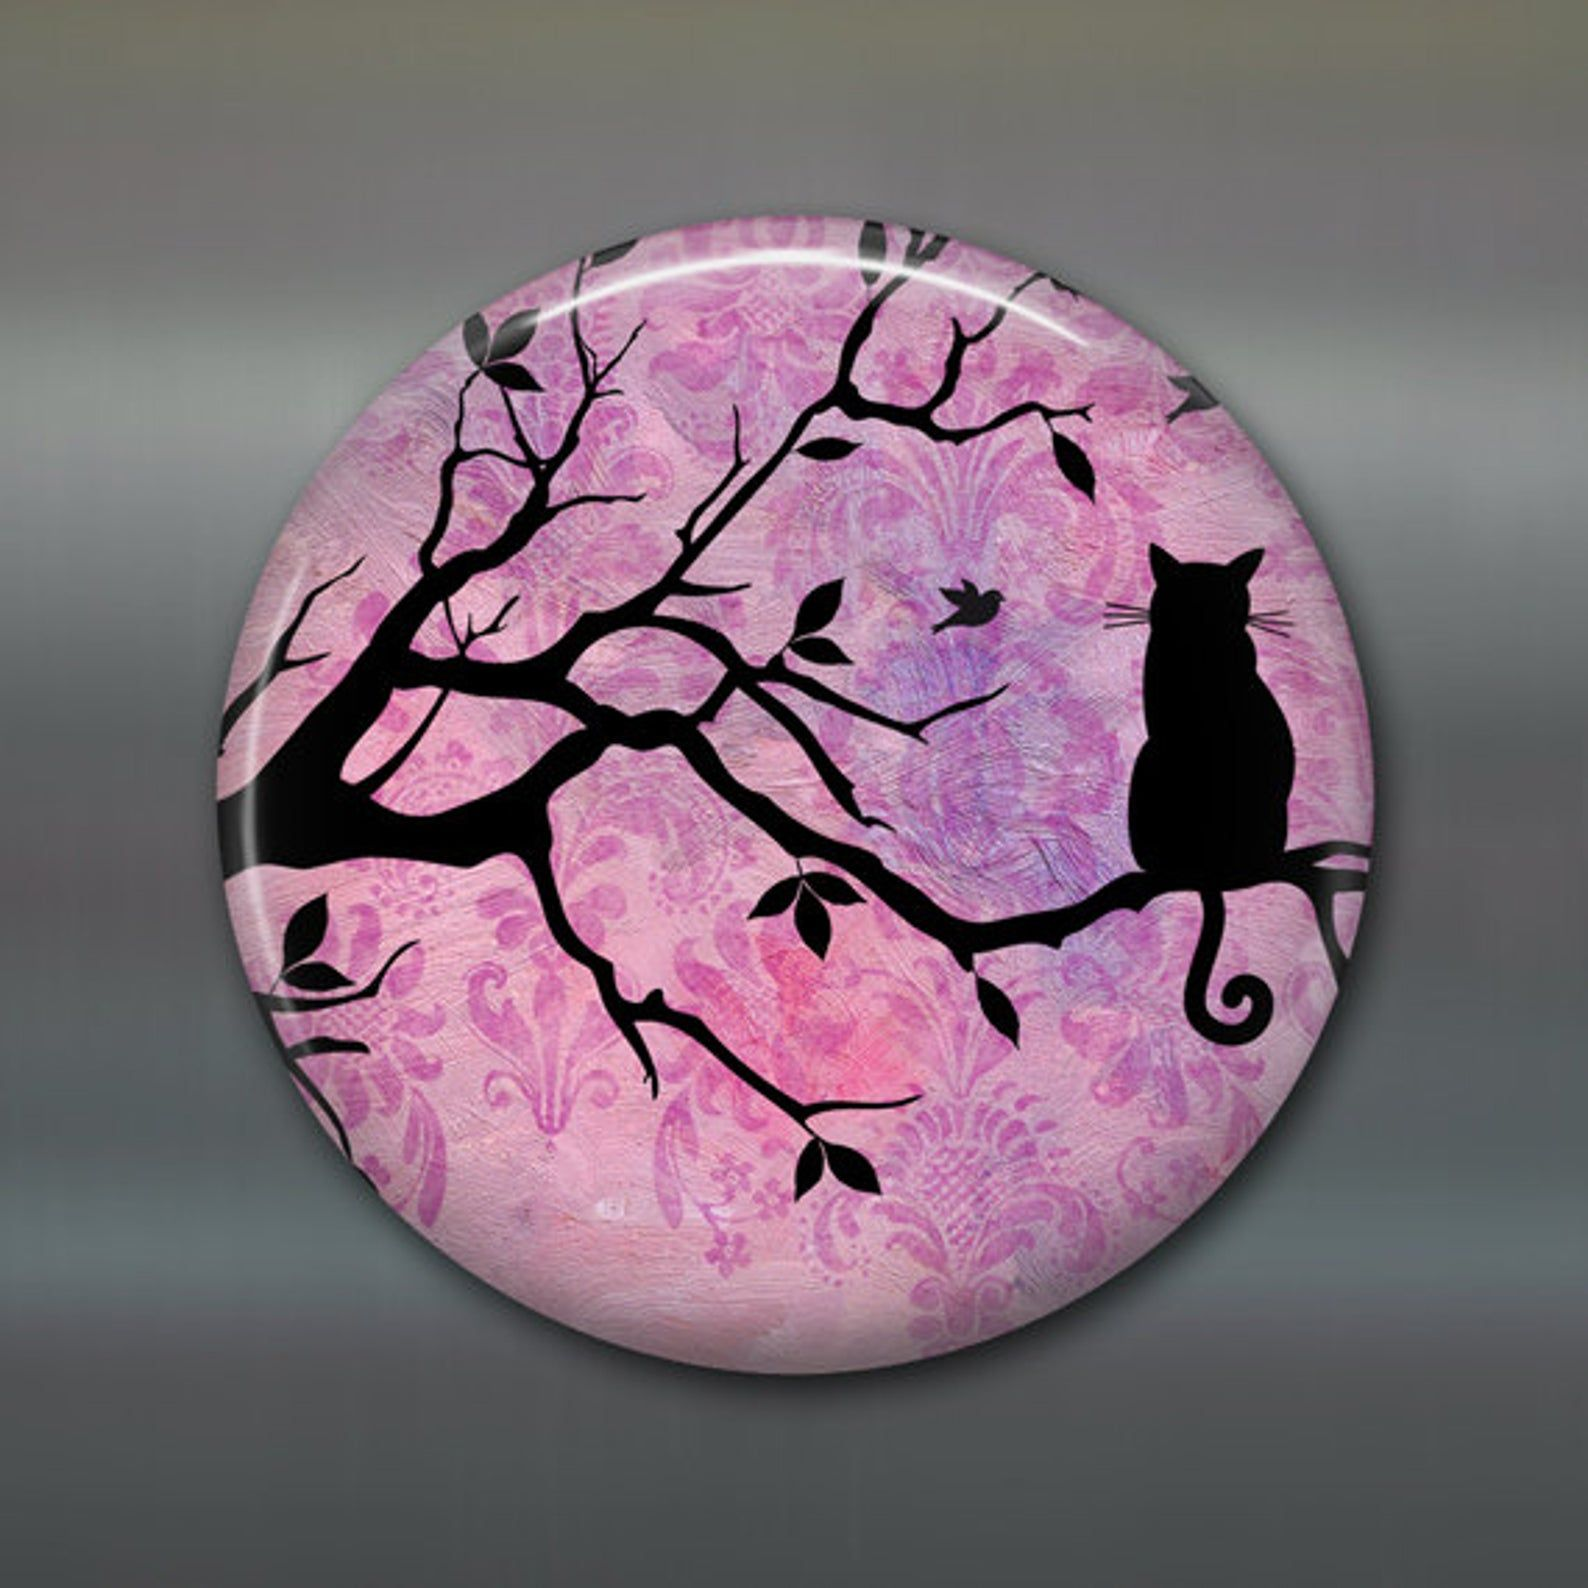 3.5 refrigerator magnet with black cat silhouette - housewarming gifts for cat lovers MA-604